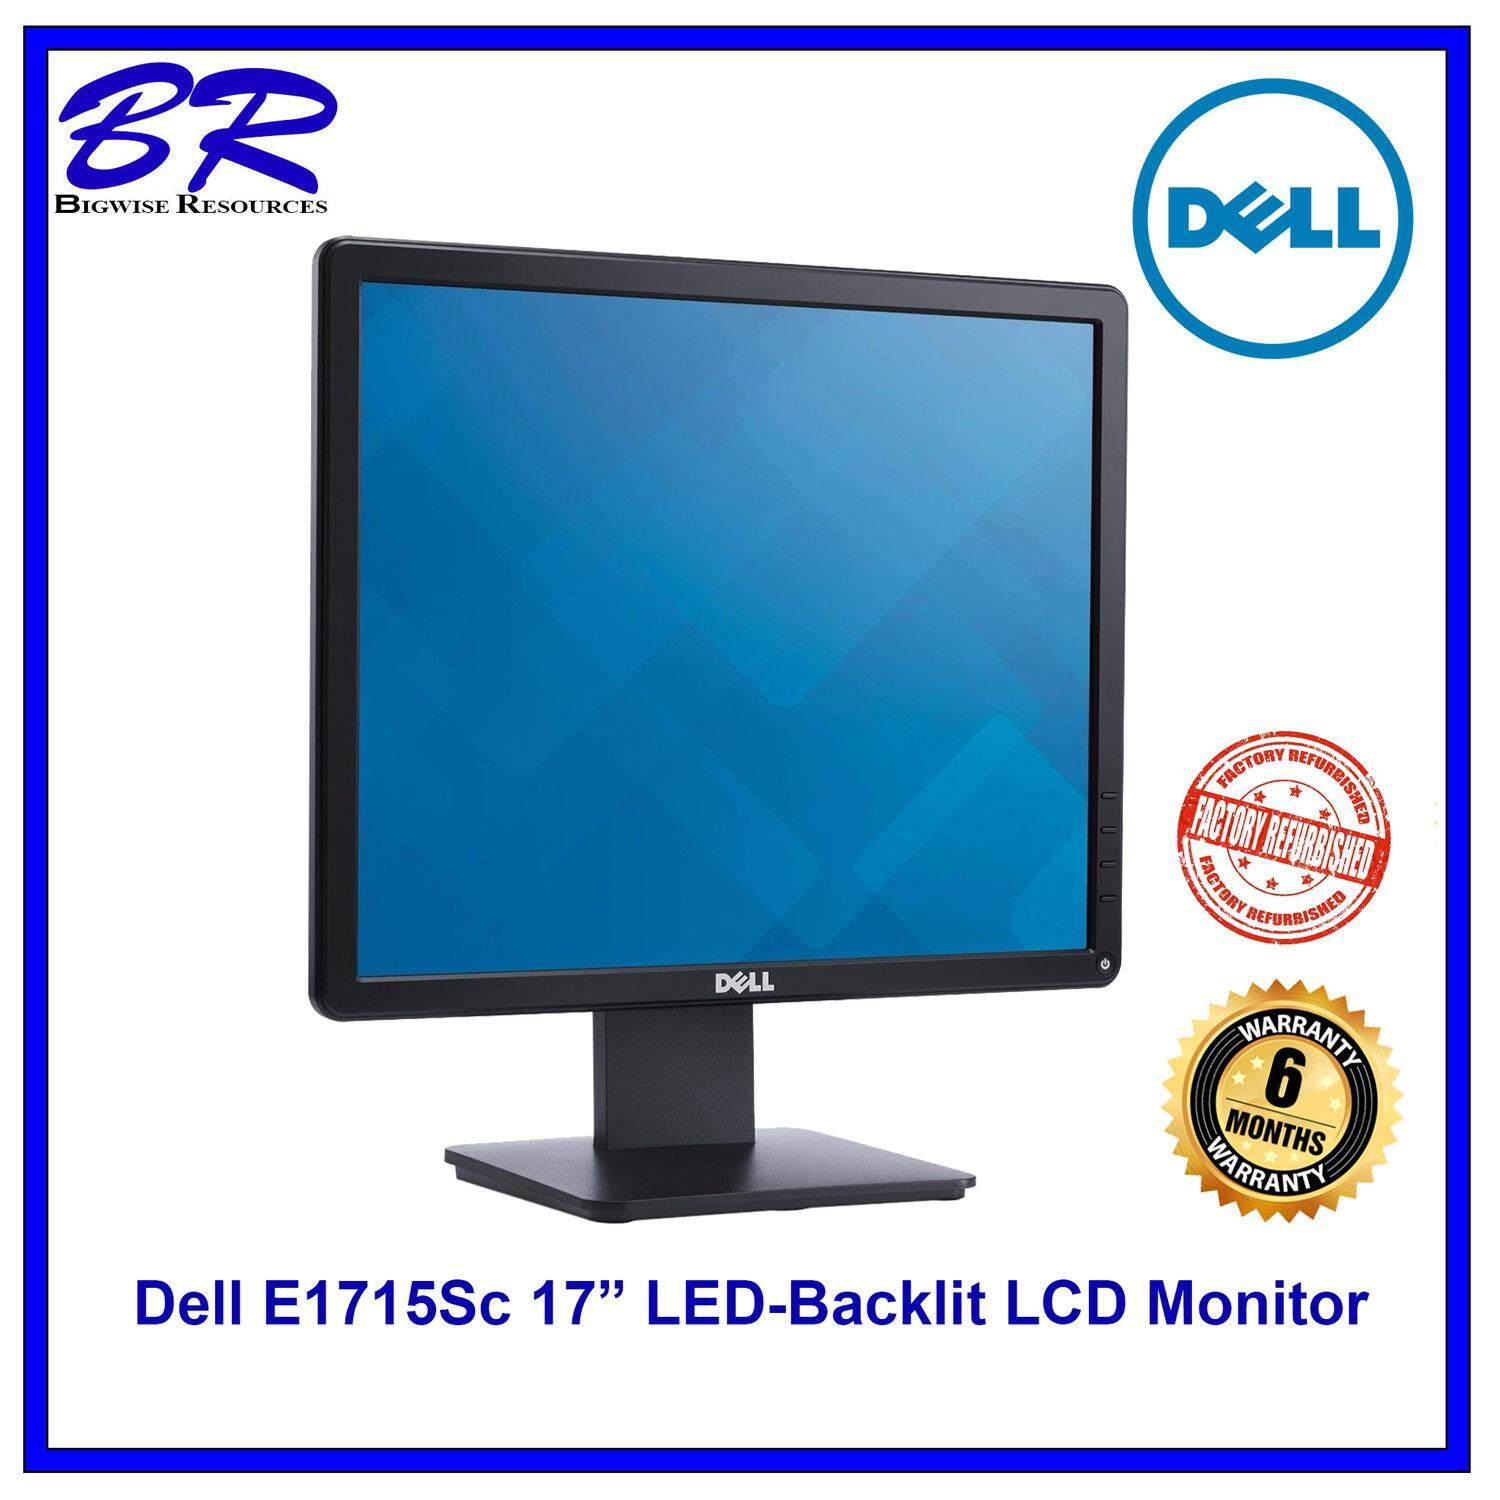 Dell Computer Accessories Monitors Price In Malaysia Best Monitor Led P1917s Refurbished E1715sc 17 Backlit Lcd